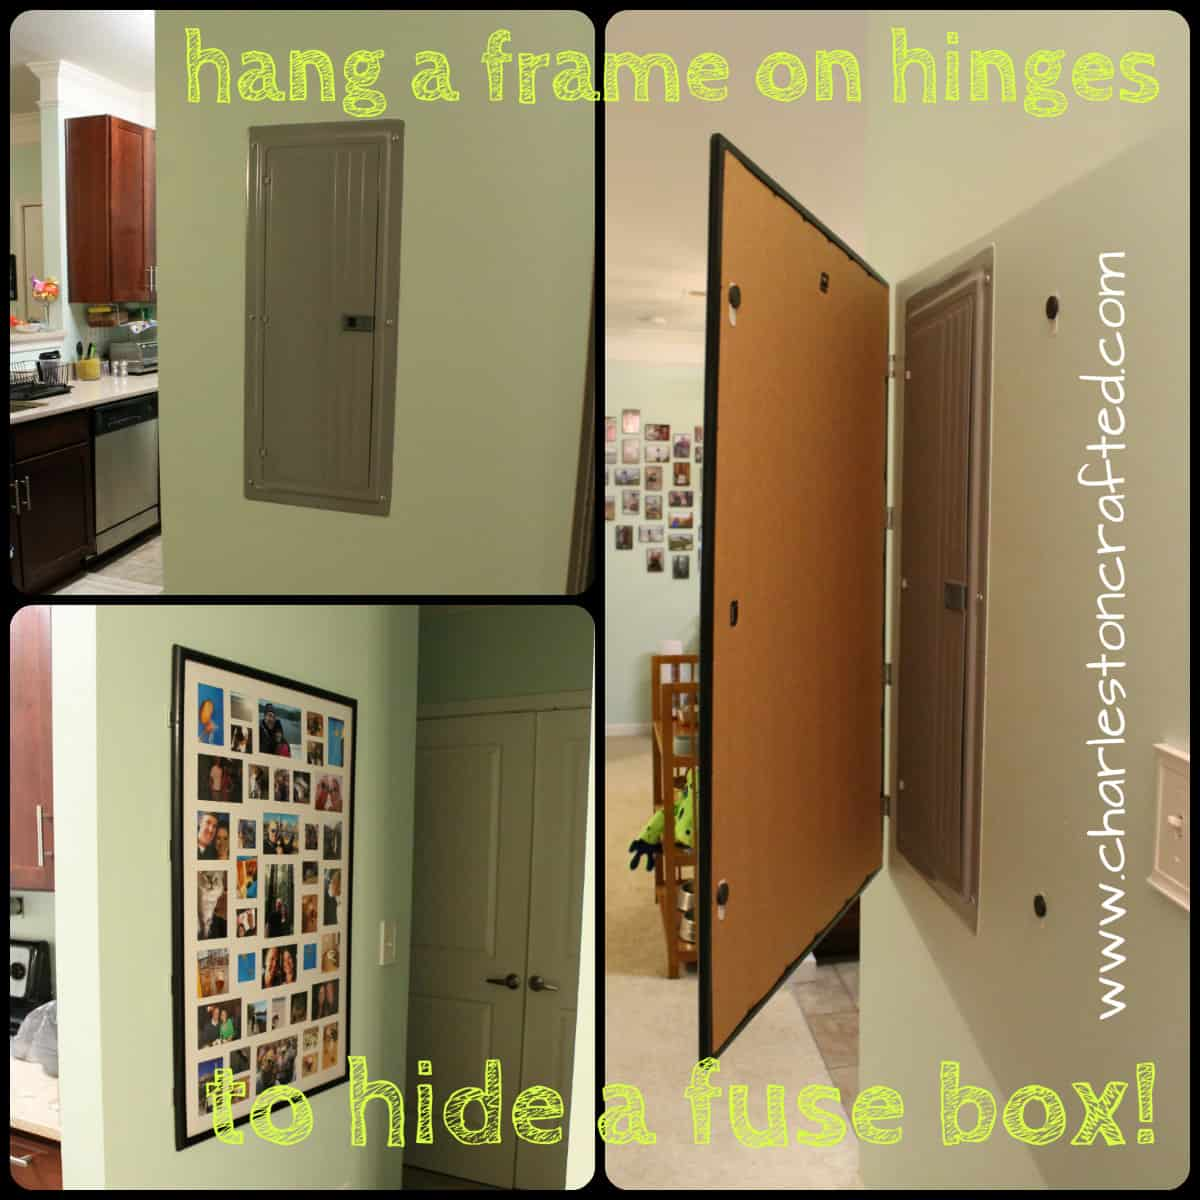 How to Hide a Fuse Box By Hanging a Frame on Hinges Charleston Crafted now you see it, now you don't \u2022 charleston crafted how to hide fuse box at edmiracle.co